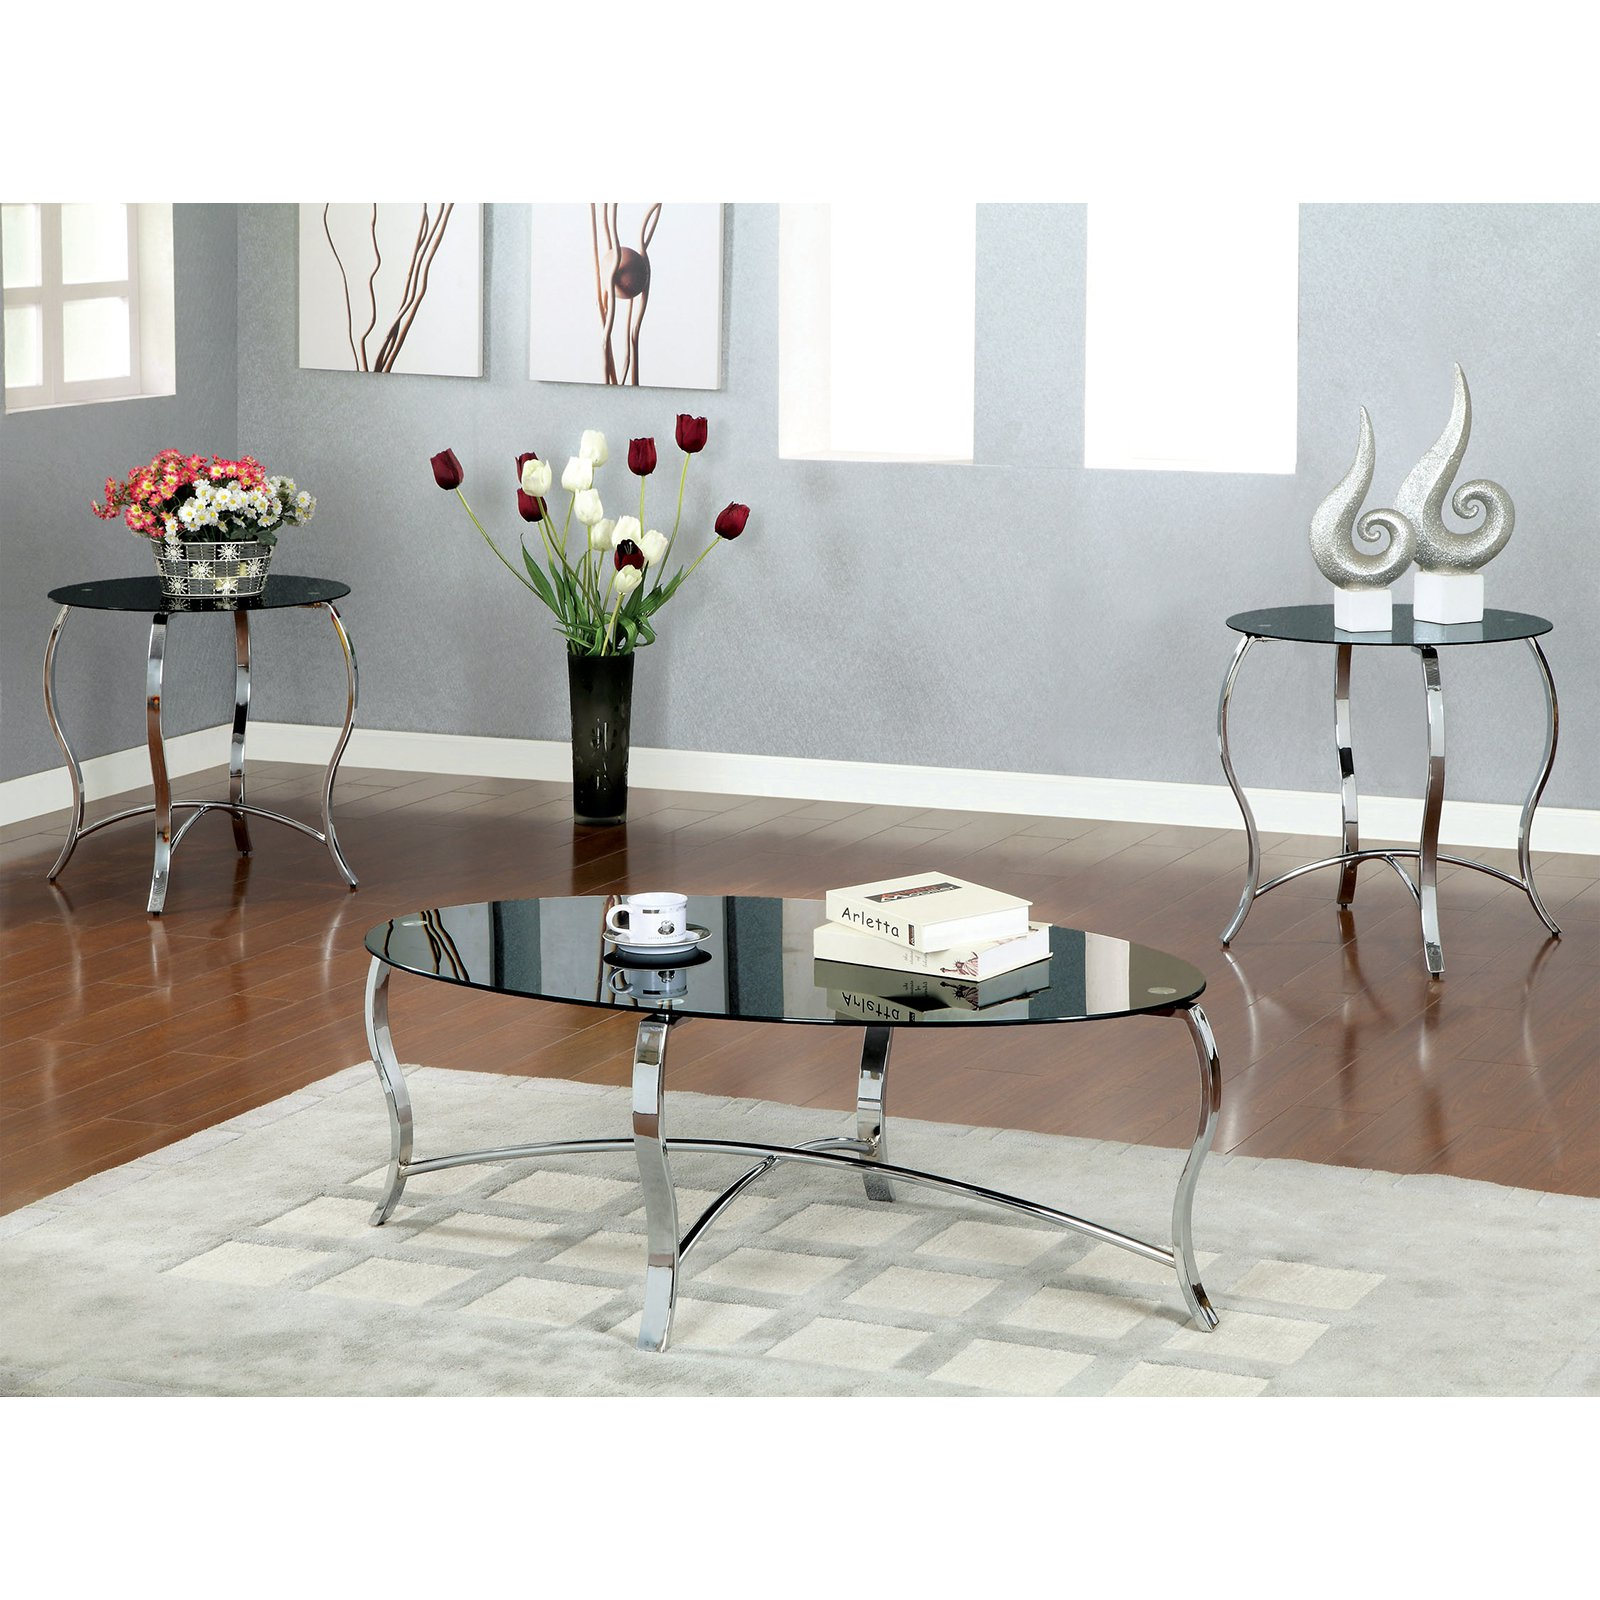 Furniture of America Ailen 3-Piece Tempered Glass Top Accent Table Set - Chrome / Black